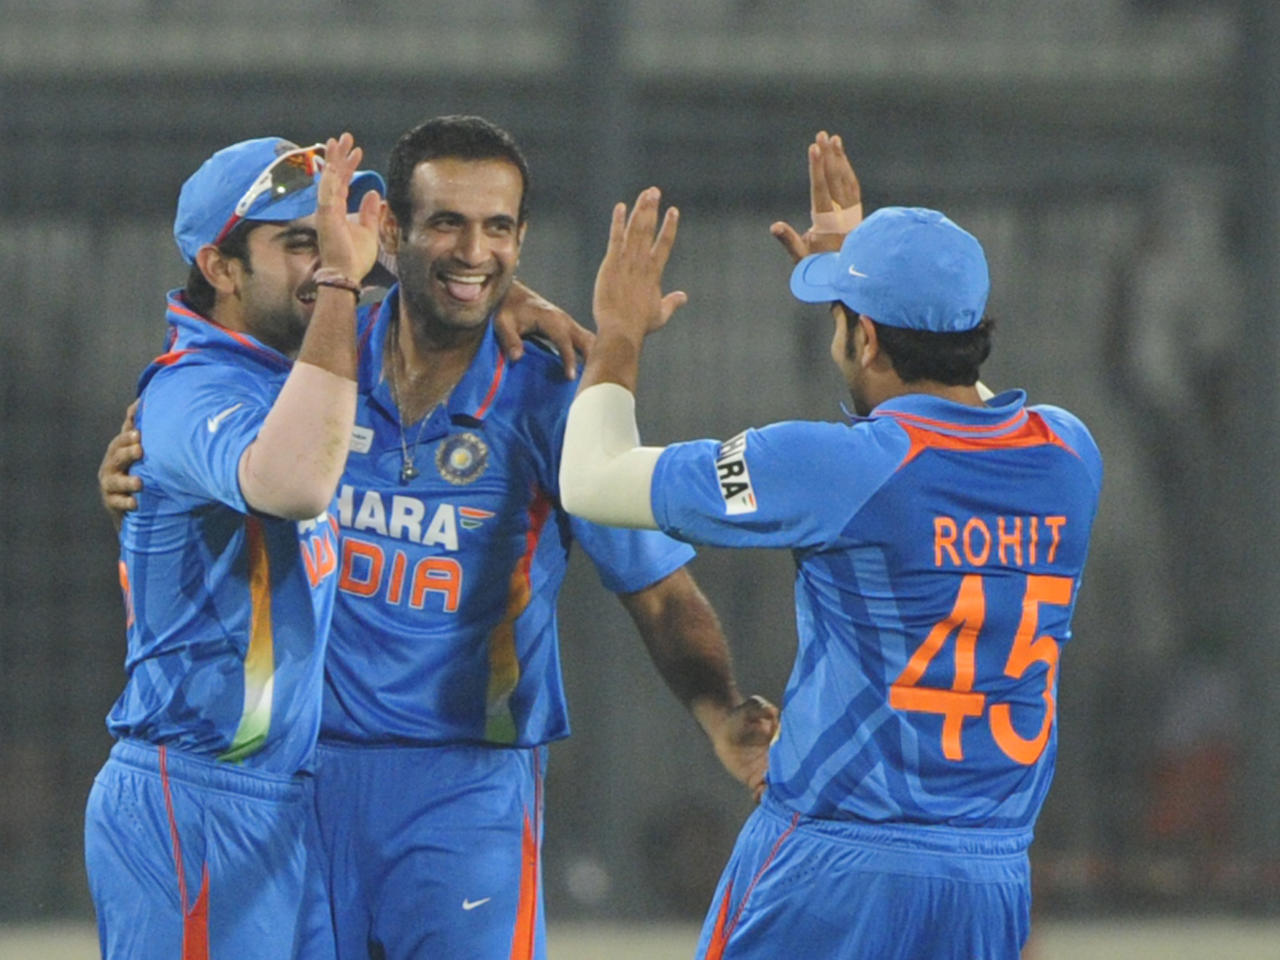 Indian cricketer Virat Kohli (L), Irfan Pathan (C) and Rohit Sharma (R) celebrate the dismissal of Sri Lankan batsman Tillakaratne Dilshan during the one day international (ODI) Asia Cup cricket match between India and Sri Lanka at The Sher-e-Bangla National Cricket Stadium in Dhaka on March 13, 2012.